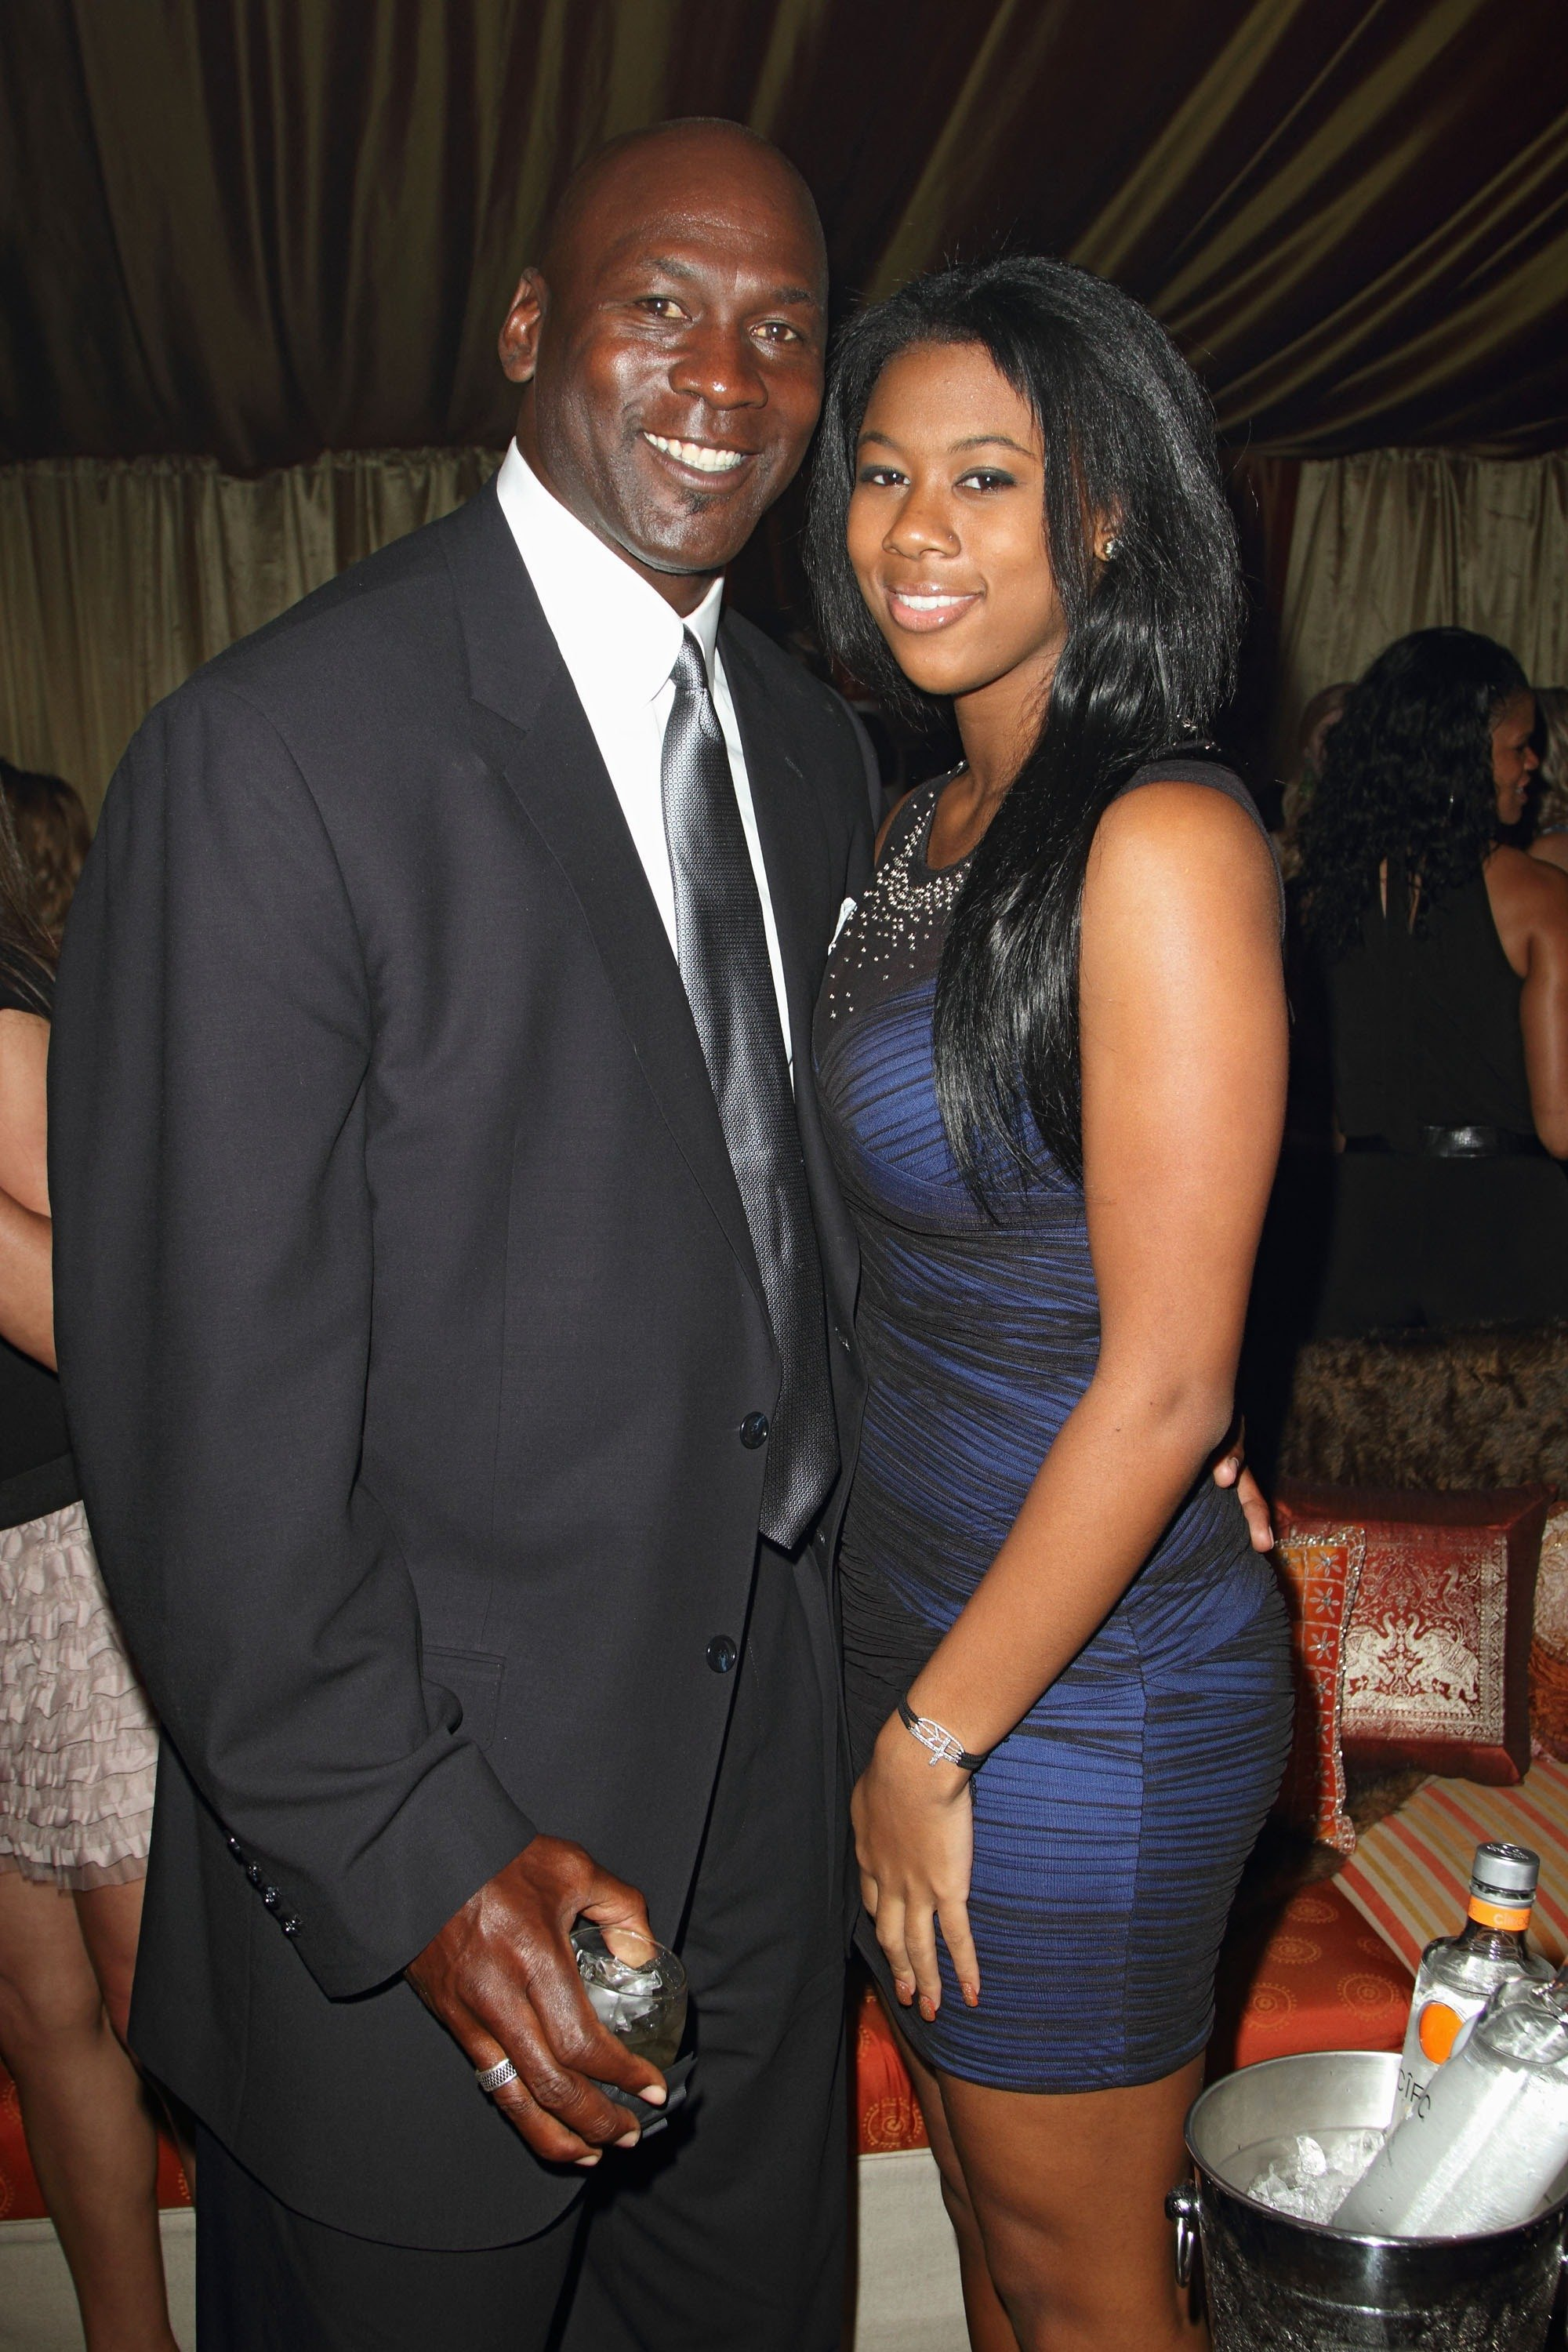 Michael Jordan and Jasmine Jordan at Jordan All-Star With Fabolous 23 on Feb. 25, 2012 in Florida | Photo: Getty Images